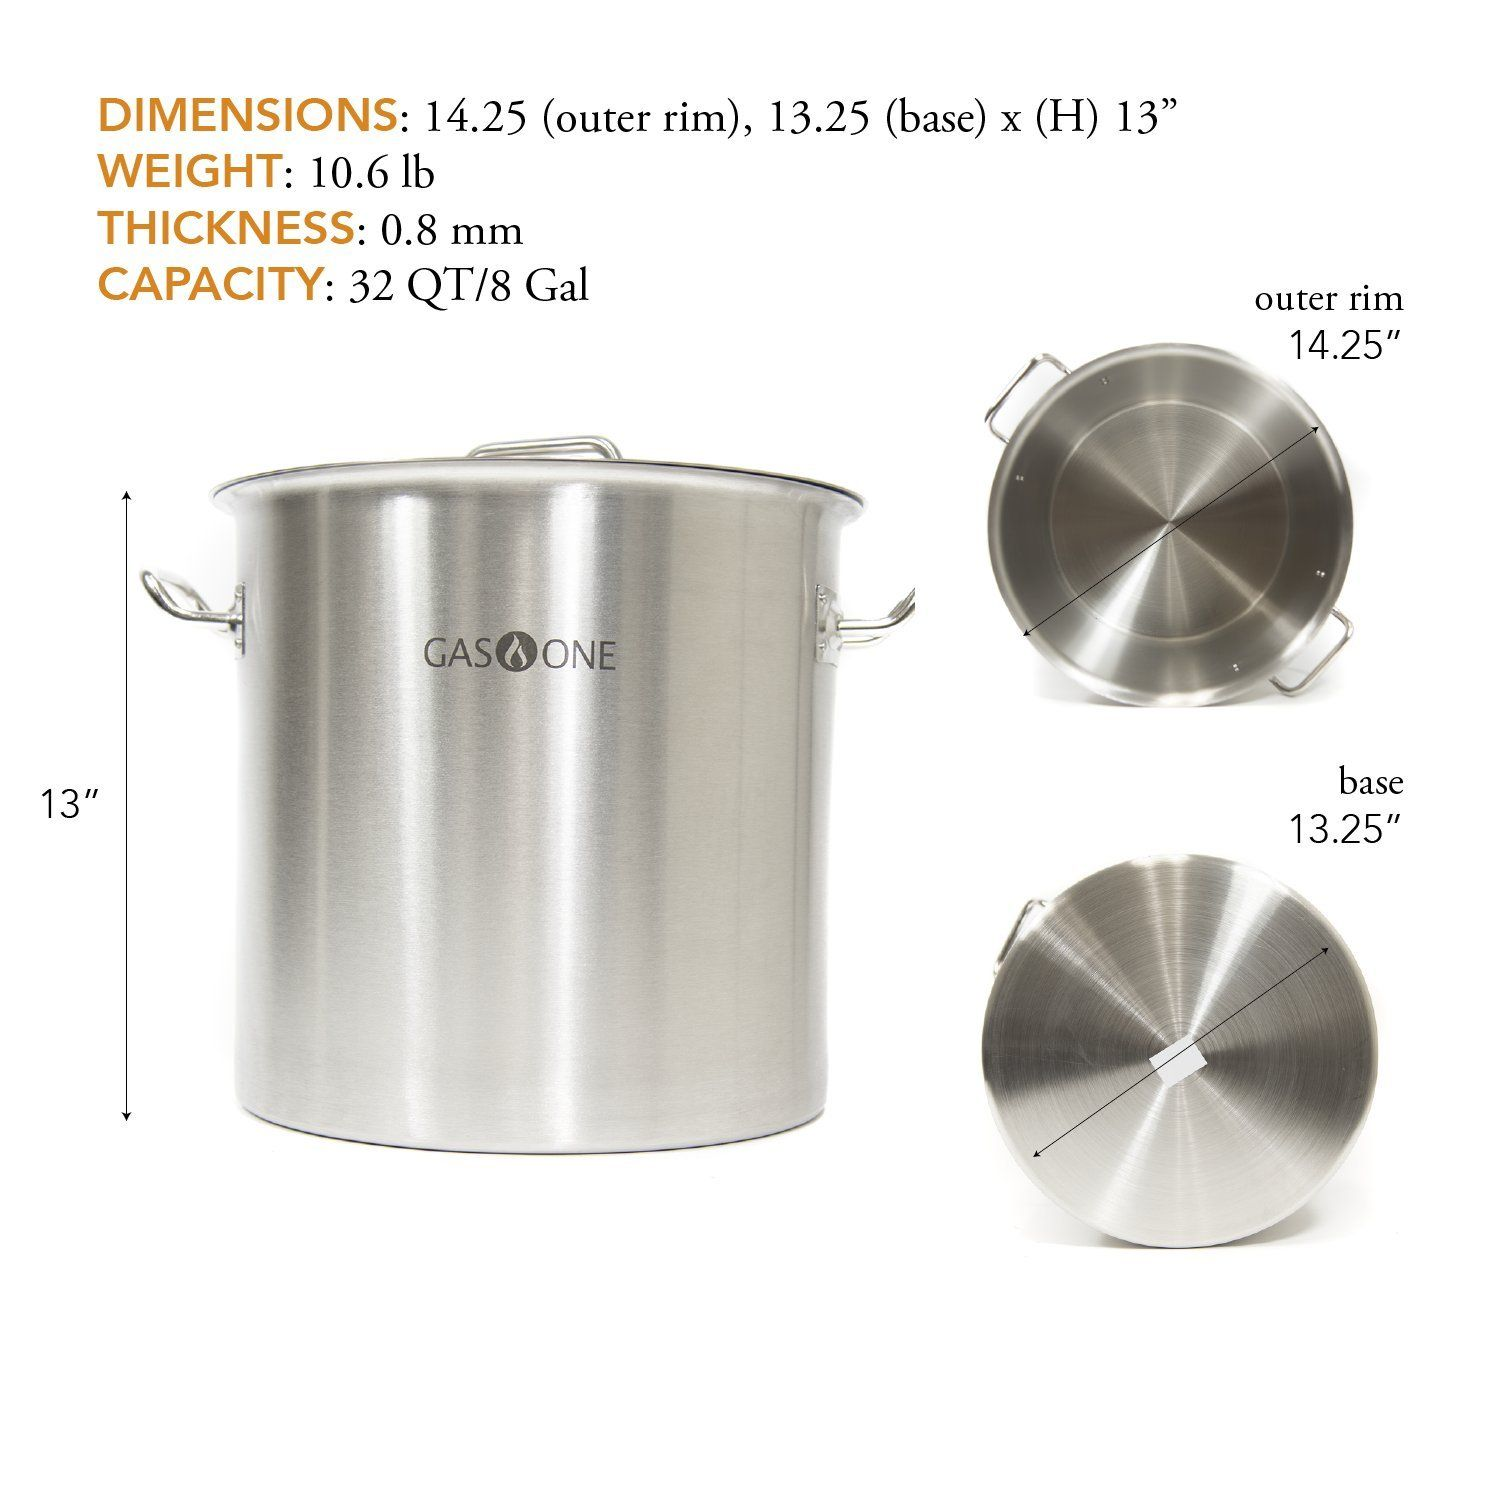 Gas One Stainless Steel Brew Kettle Pot 8 Gallon 32 Quart Satin Finish With Lid Cover For Beer Brewing Crawfish Crab Beer Brewing Crawfish Cooking Accessories